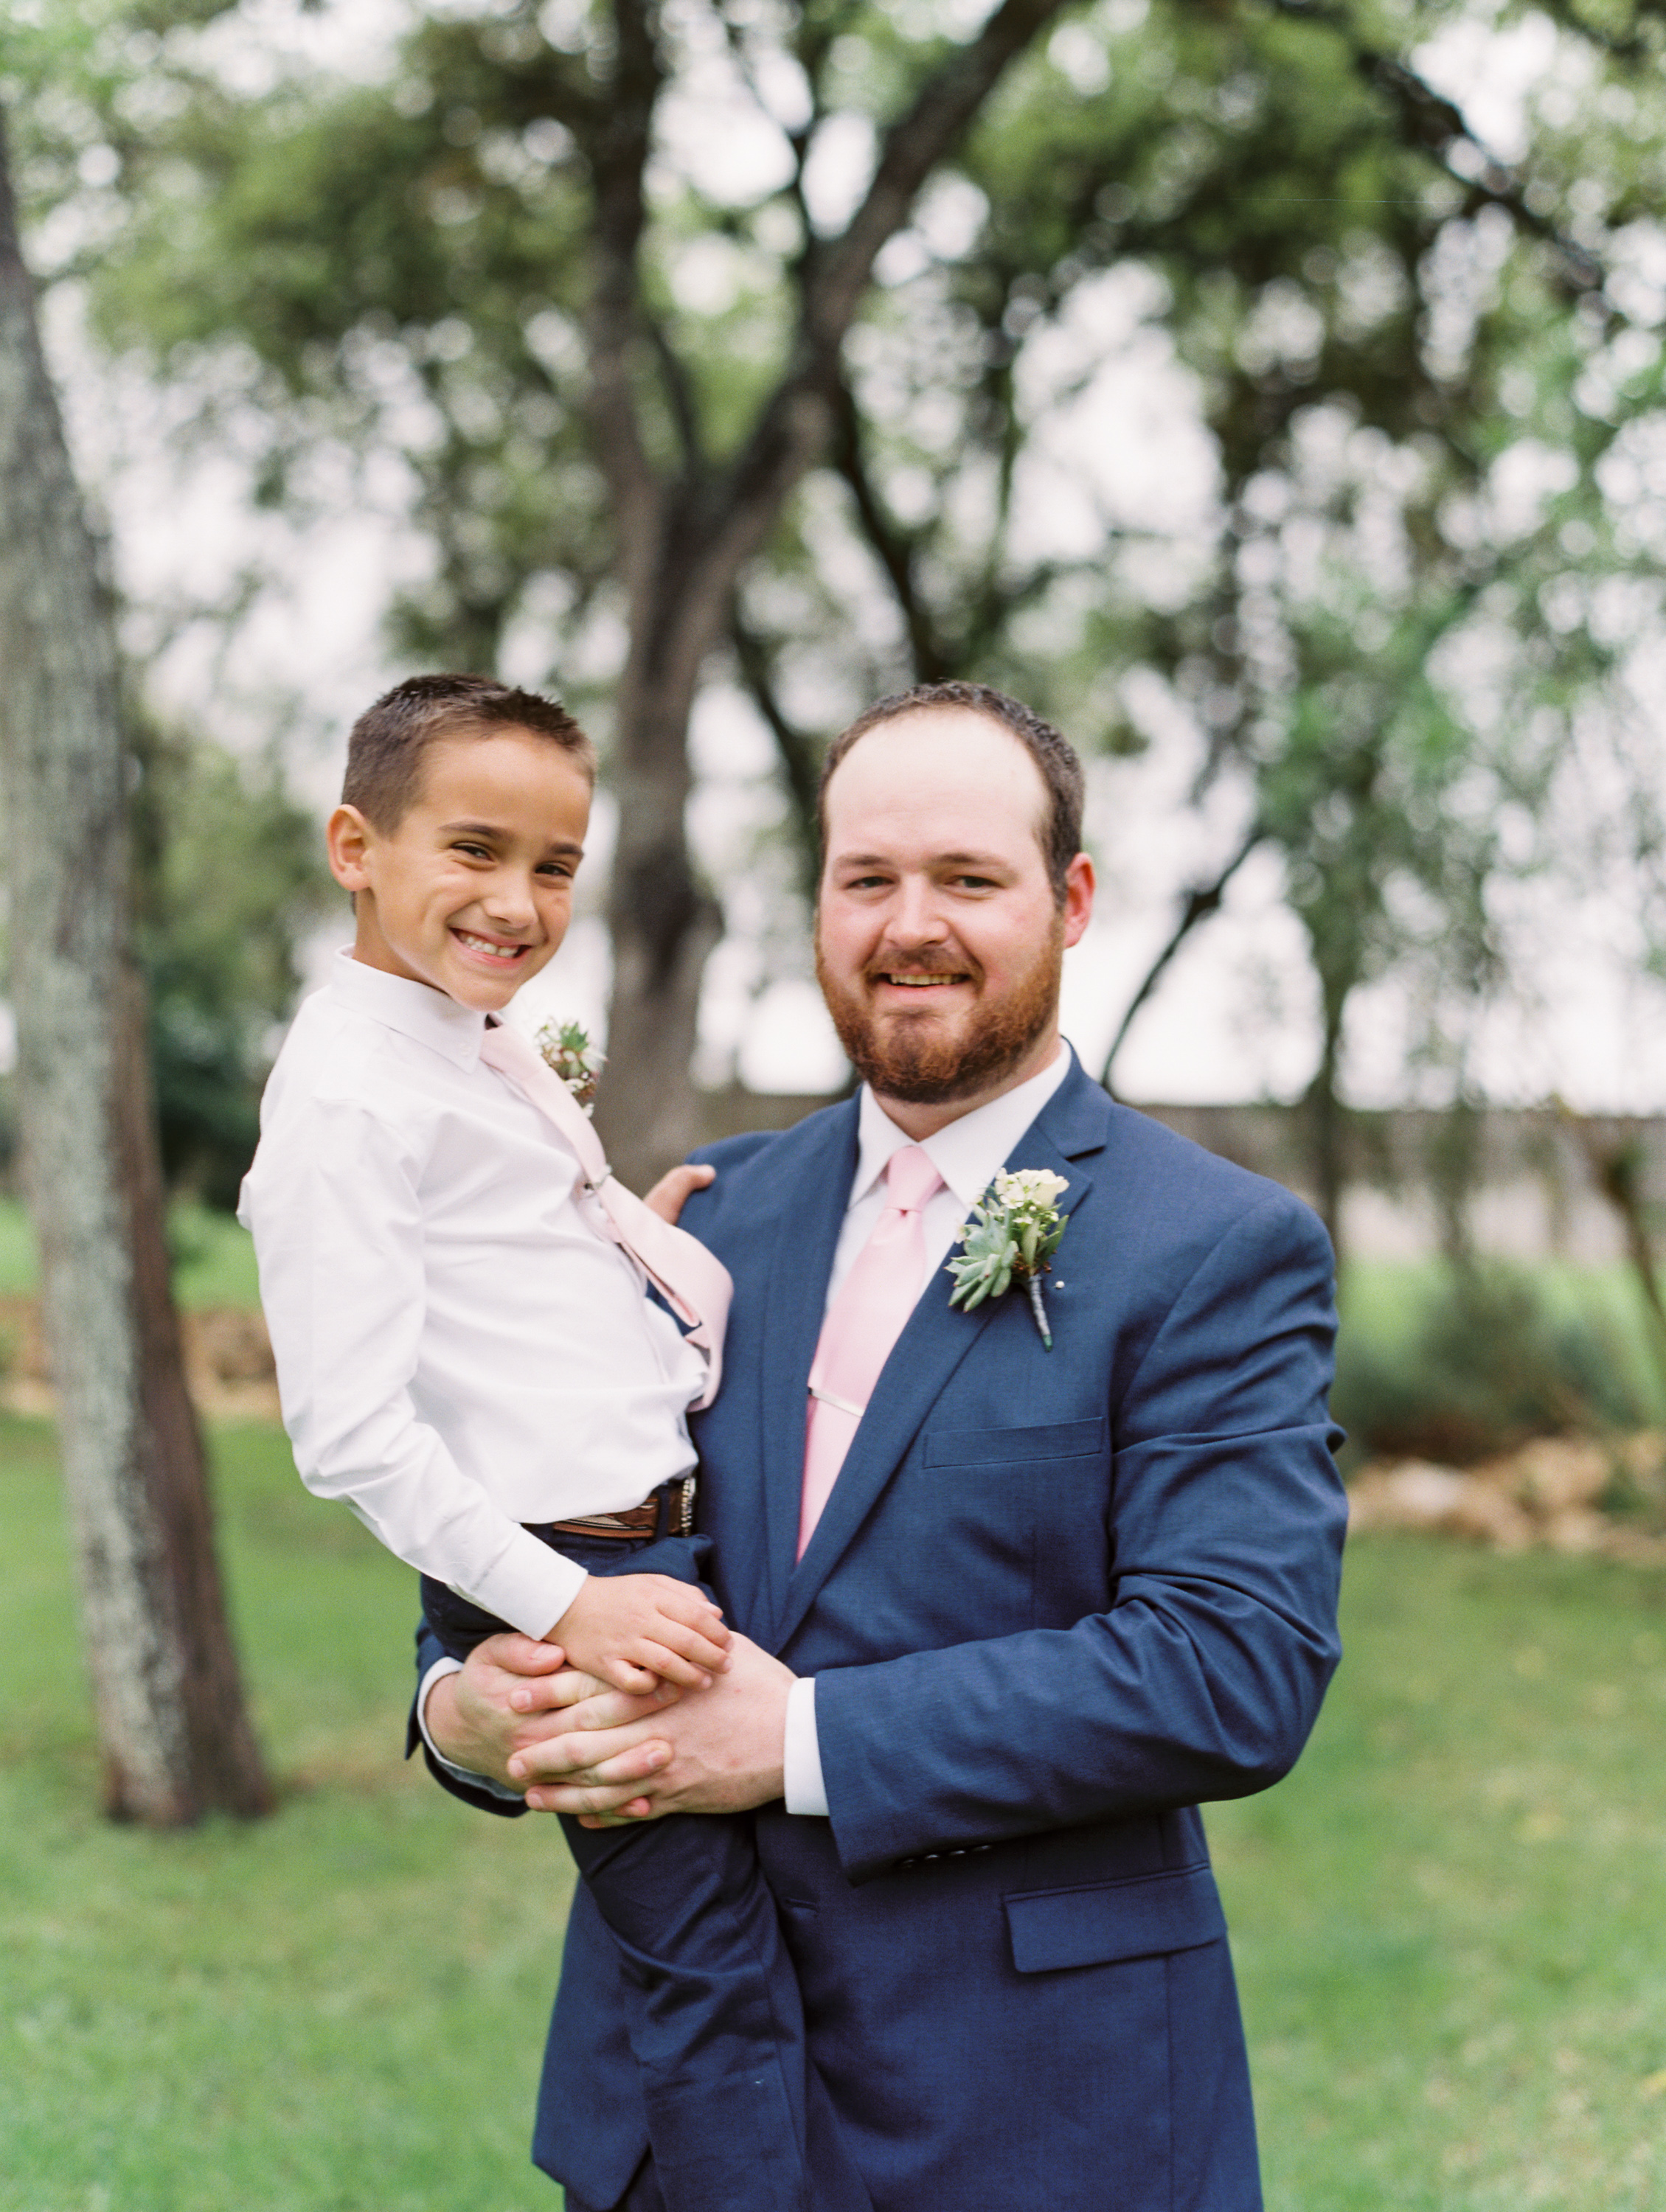 Hill Country Spring Wedding at Red Bud Hall | Austin Wedding Photographer | Film Wedding Photographer | Britni Dean Photography | Rainy Day Wedding Inspiration | cute ring bearer